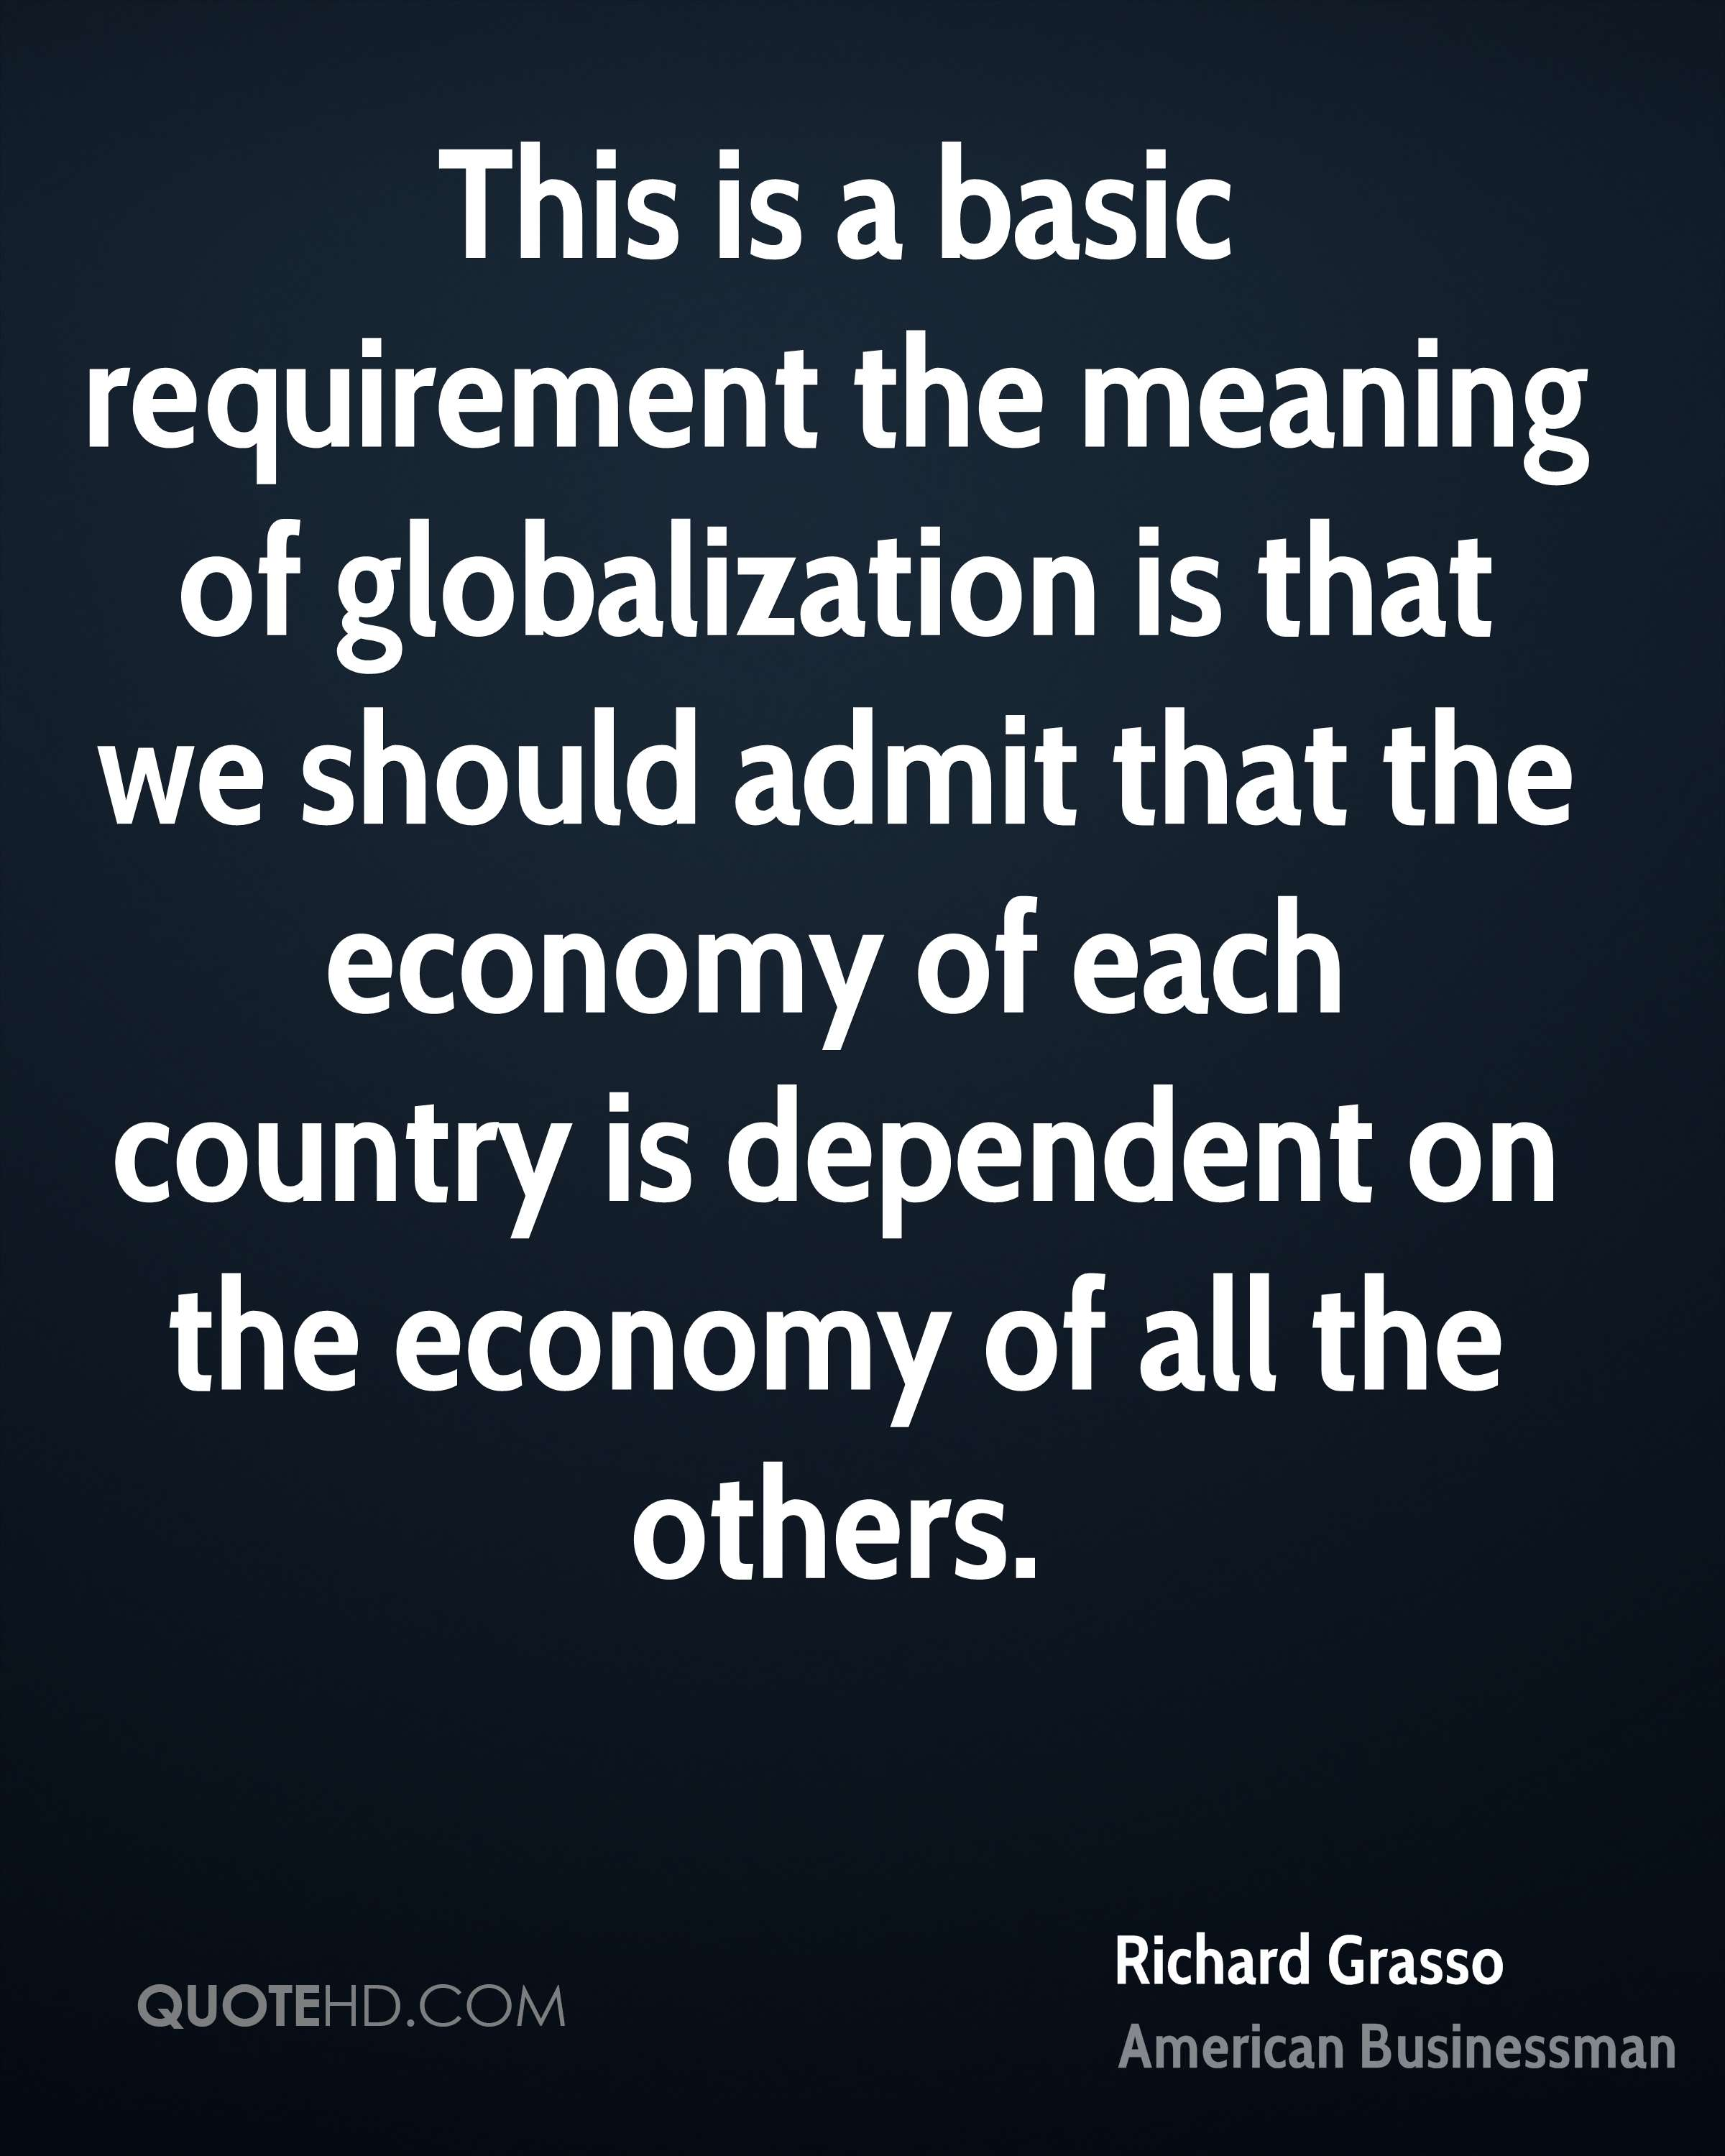 This is a basic requirement the meaning of globalization is that we should admit that the economy of each country is dependent on the economy of all the others.